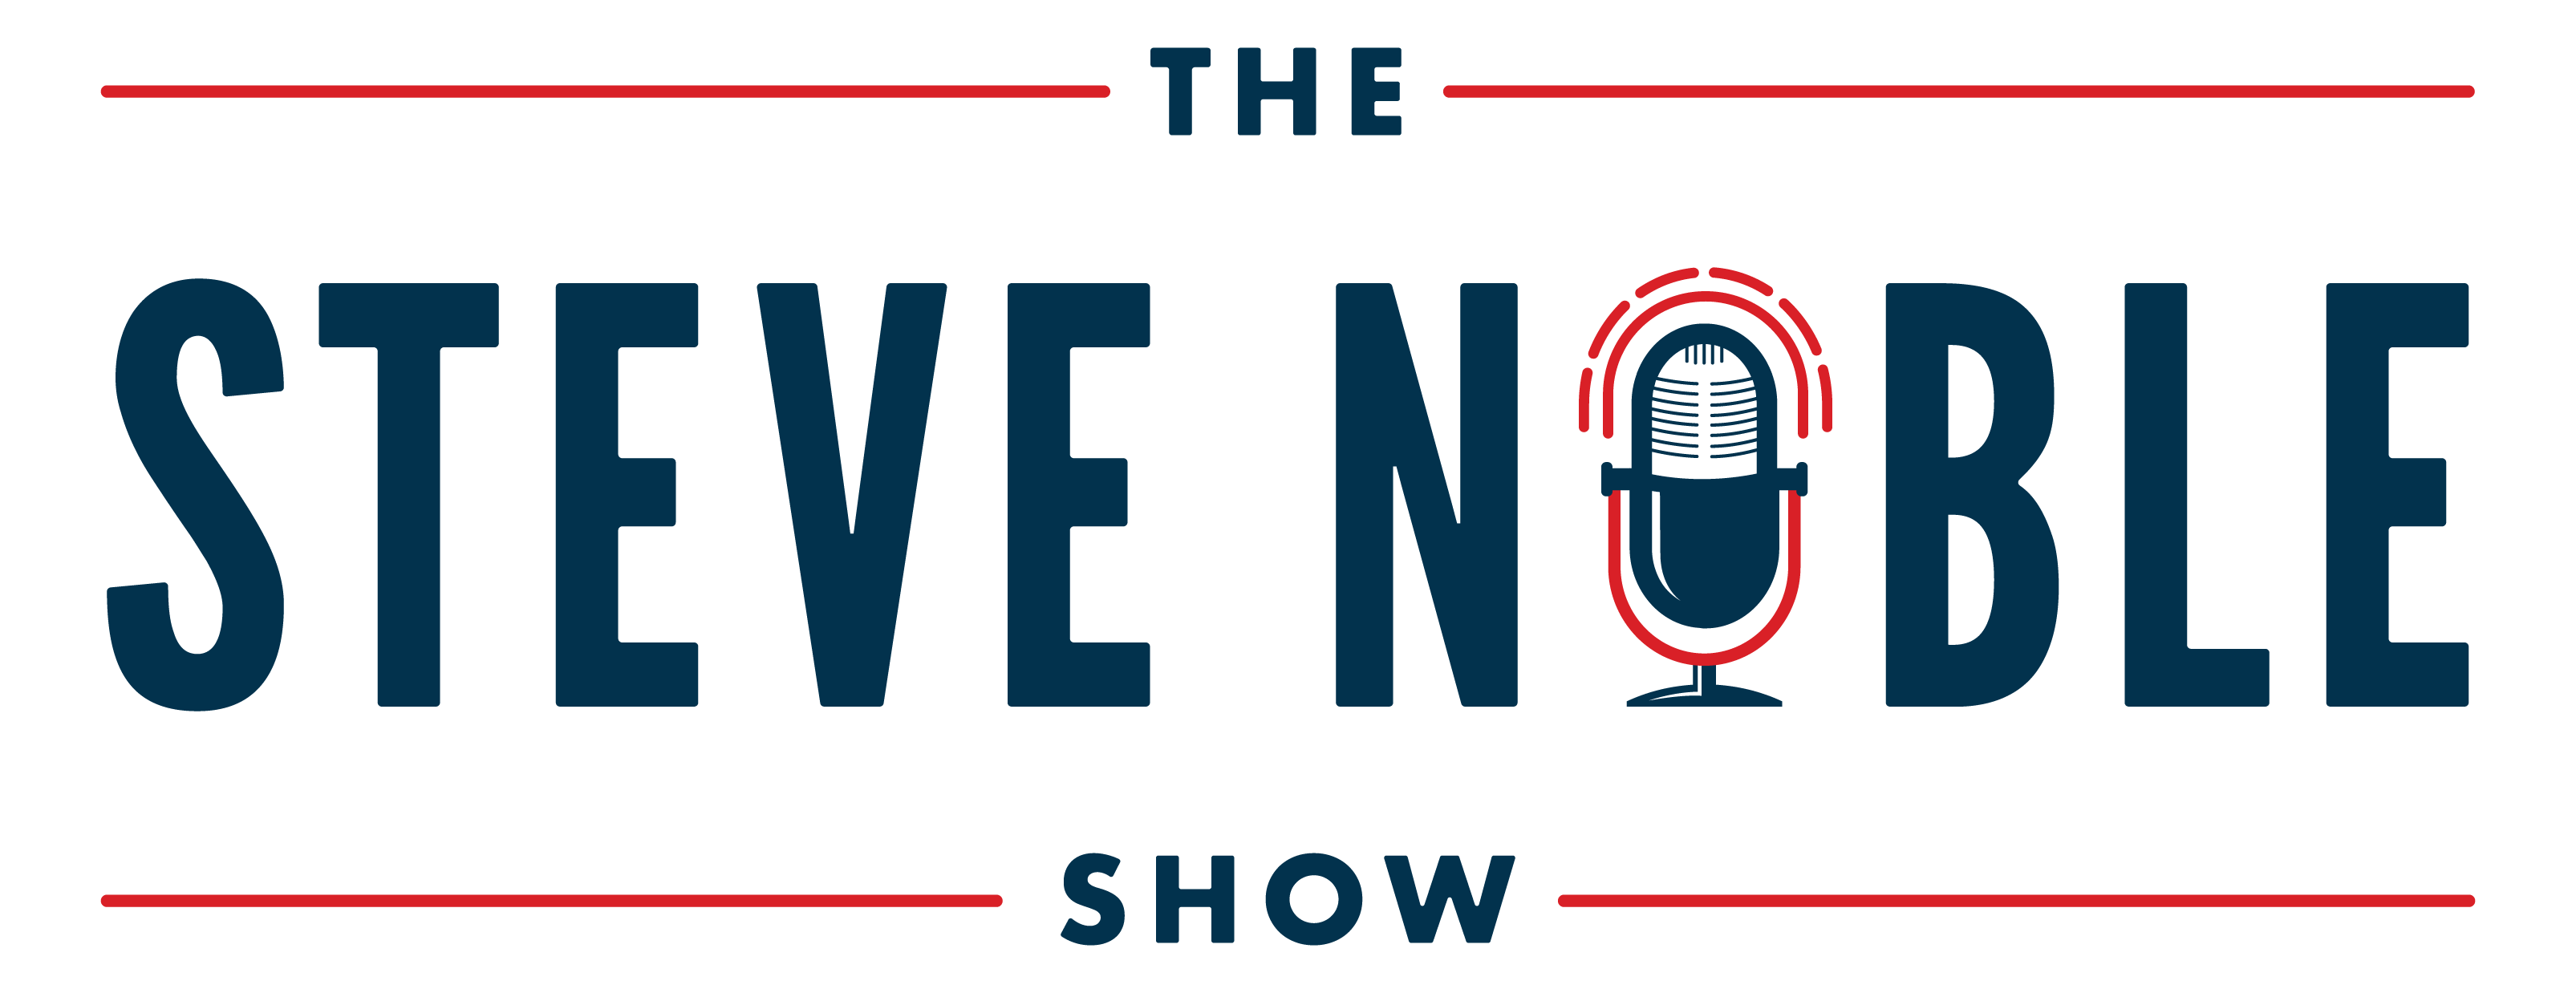 National day of prayer logo png. The steve noble show